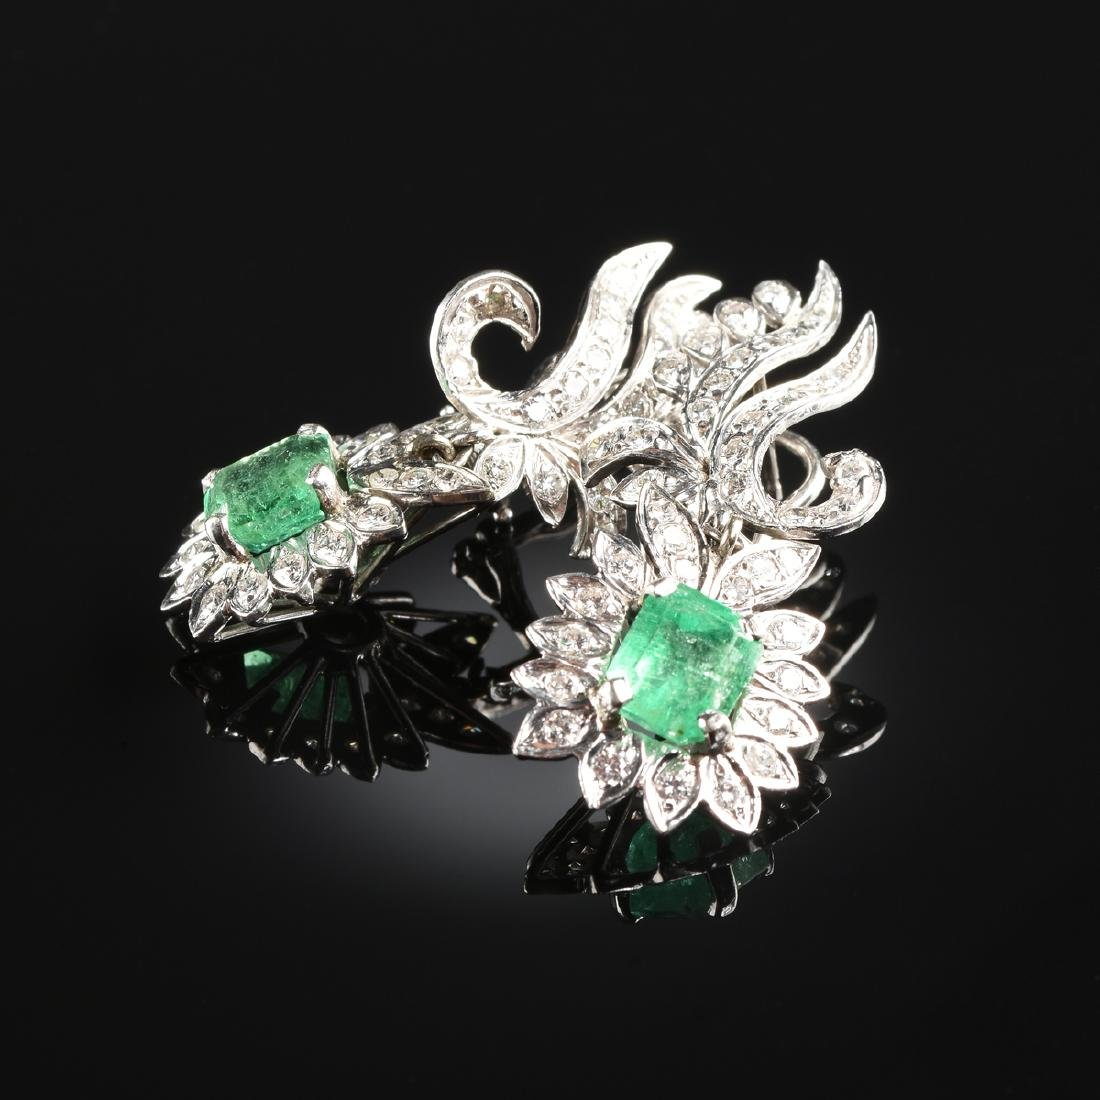 A PAIR OF 14K WHITE GOLD, PLATINUM, EMERALD, AND